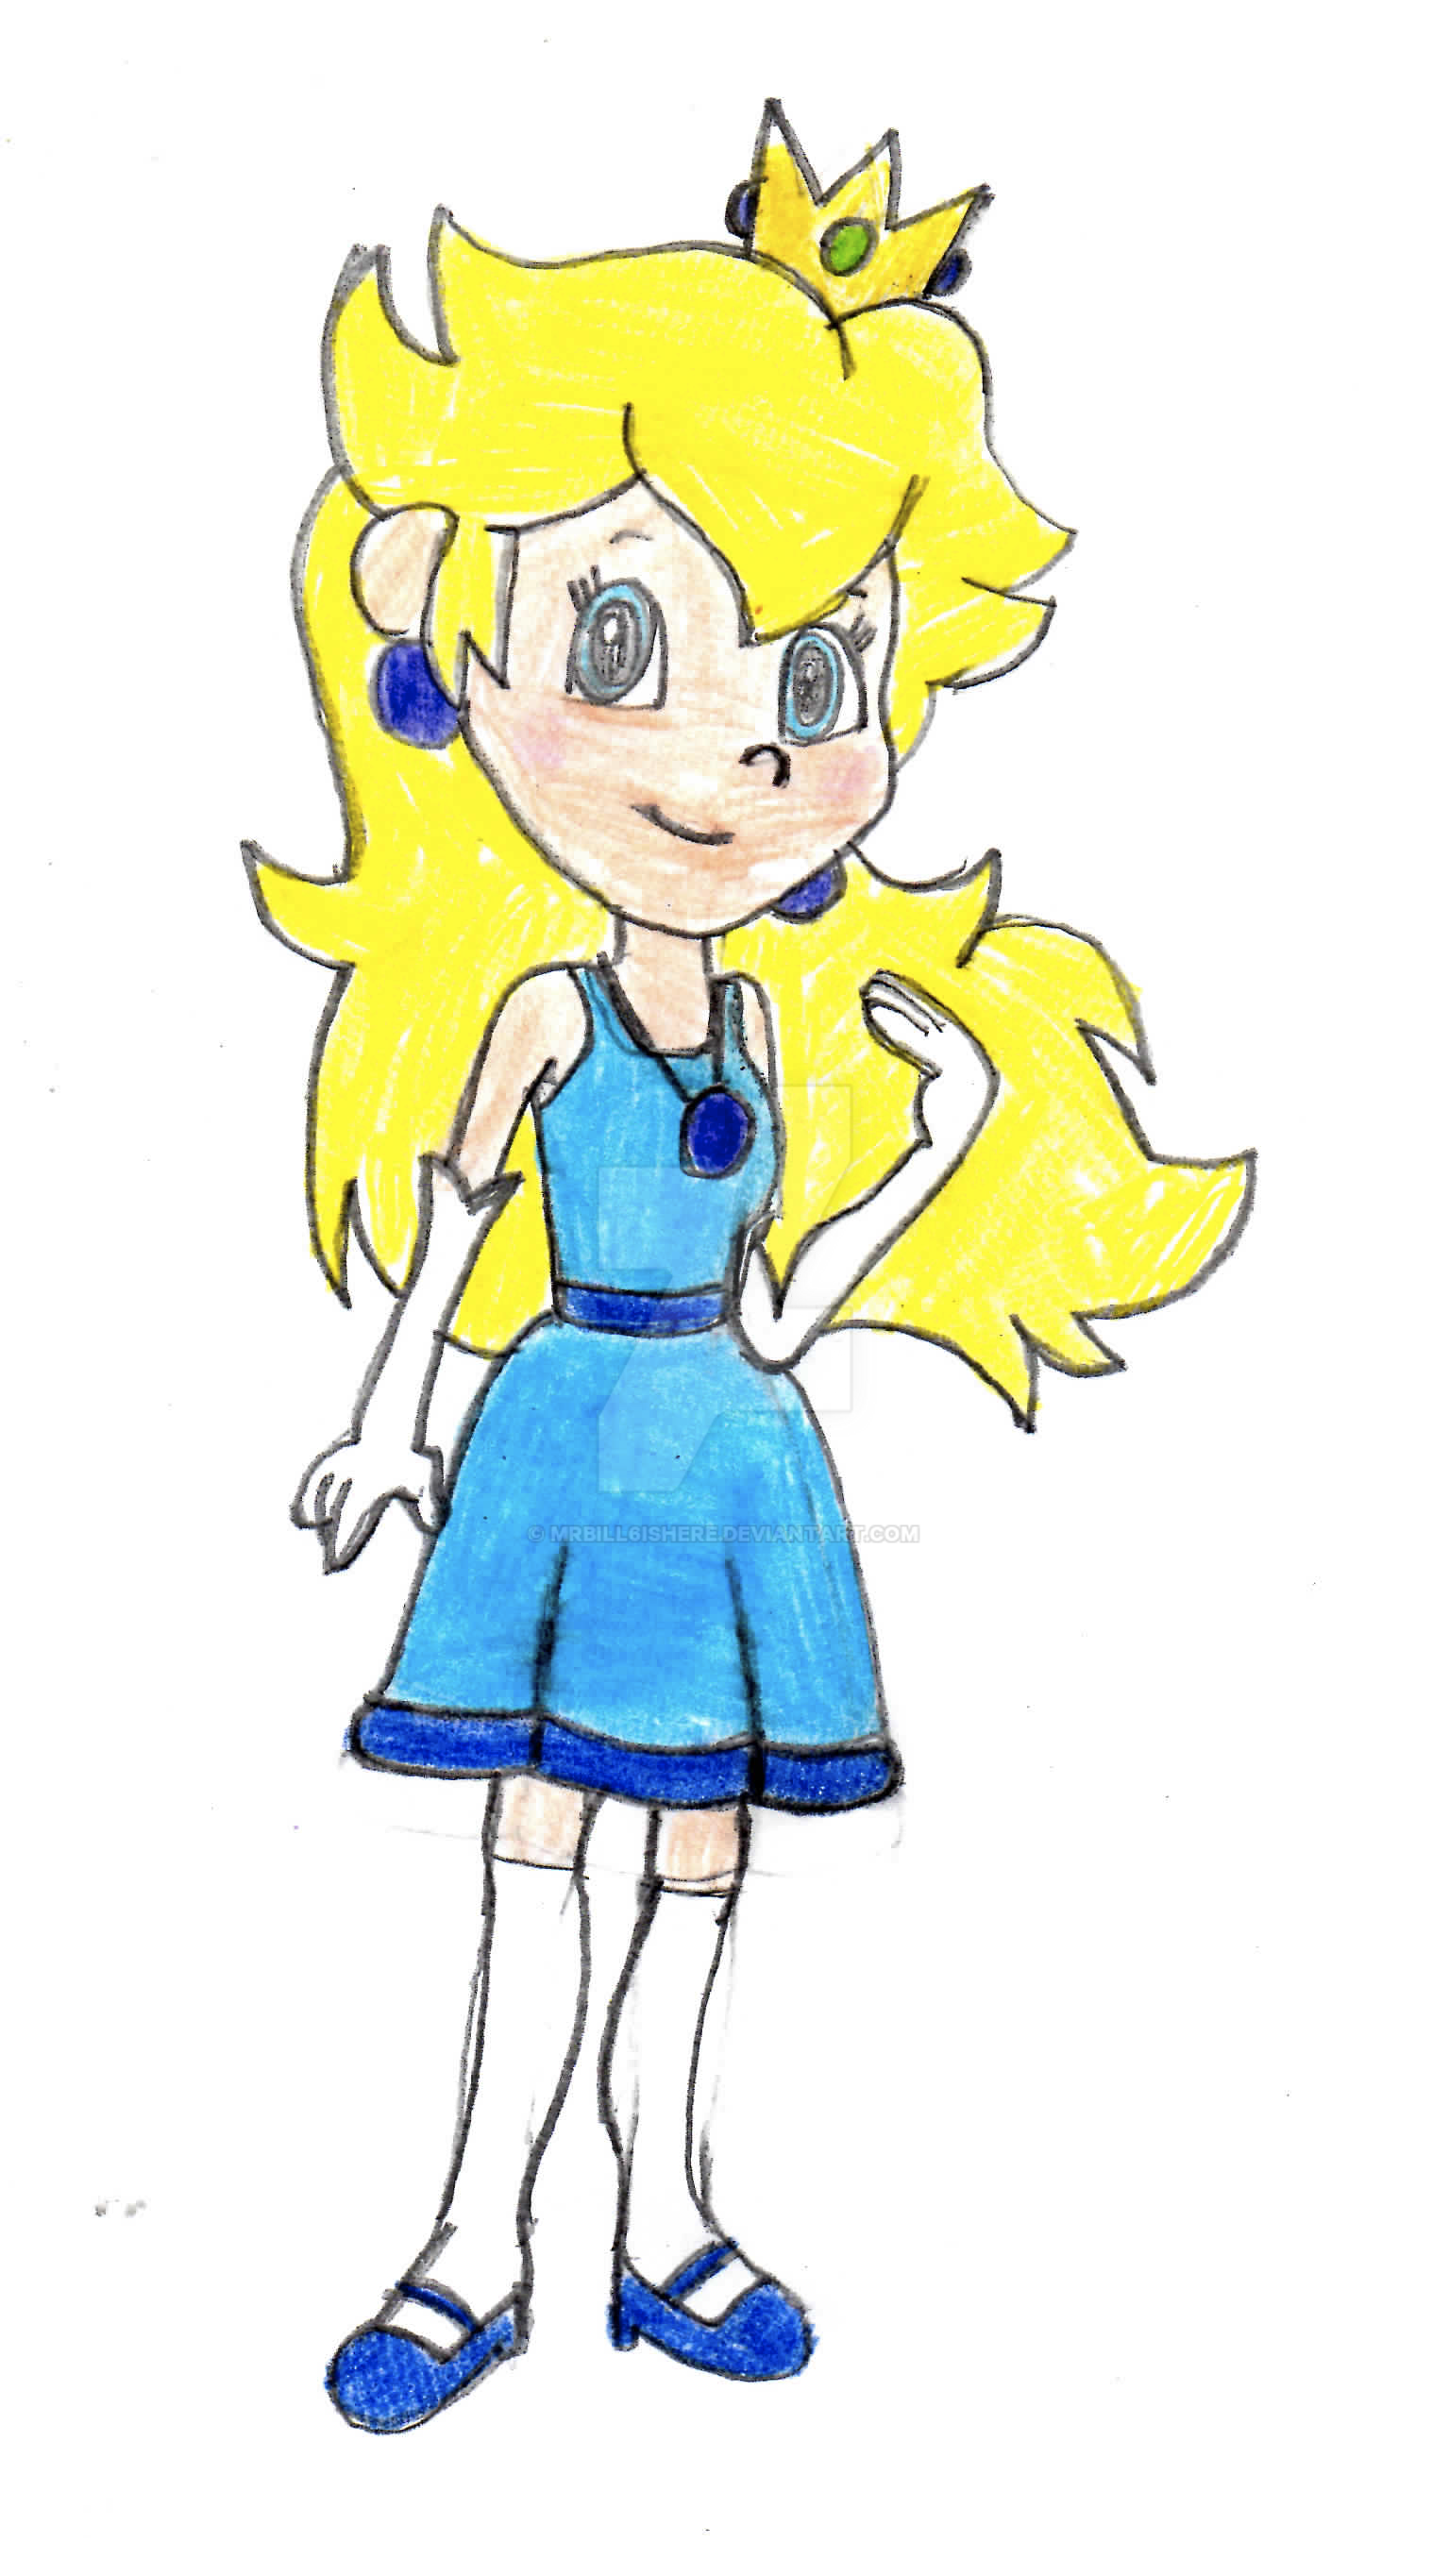 Culkin's Peach: New Outfit by mrbill6ishere